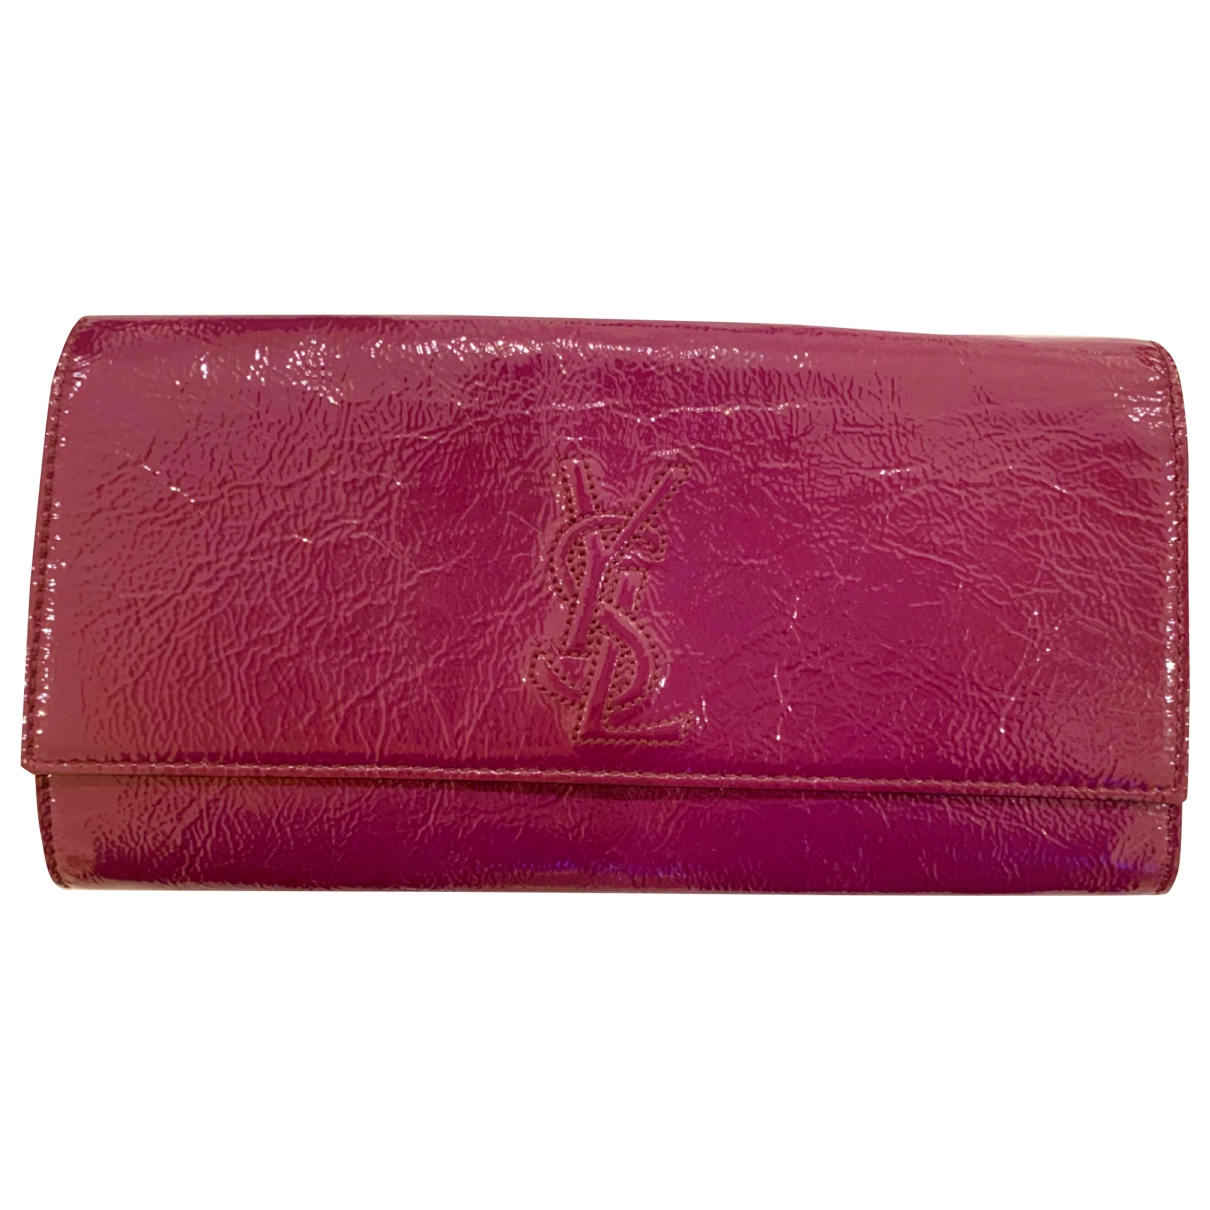 Yves Saint Laurent Belle de Jour Clutch in  Lila Lackleder